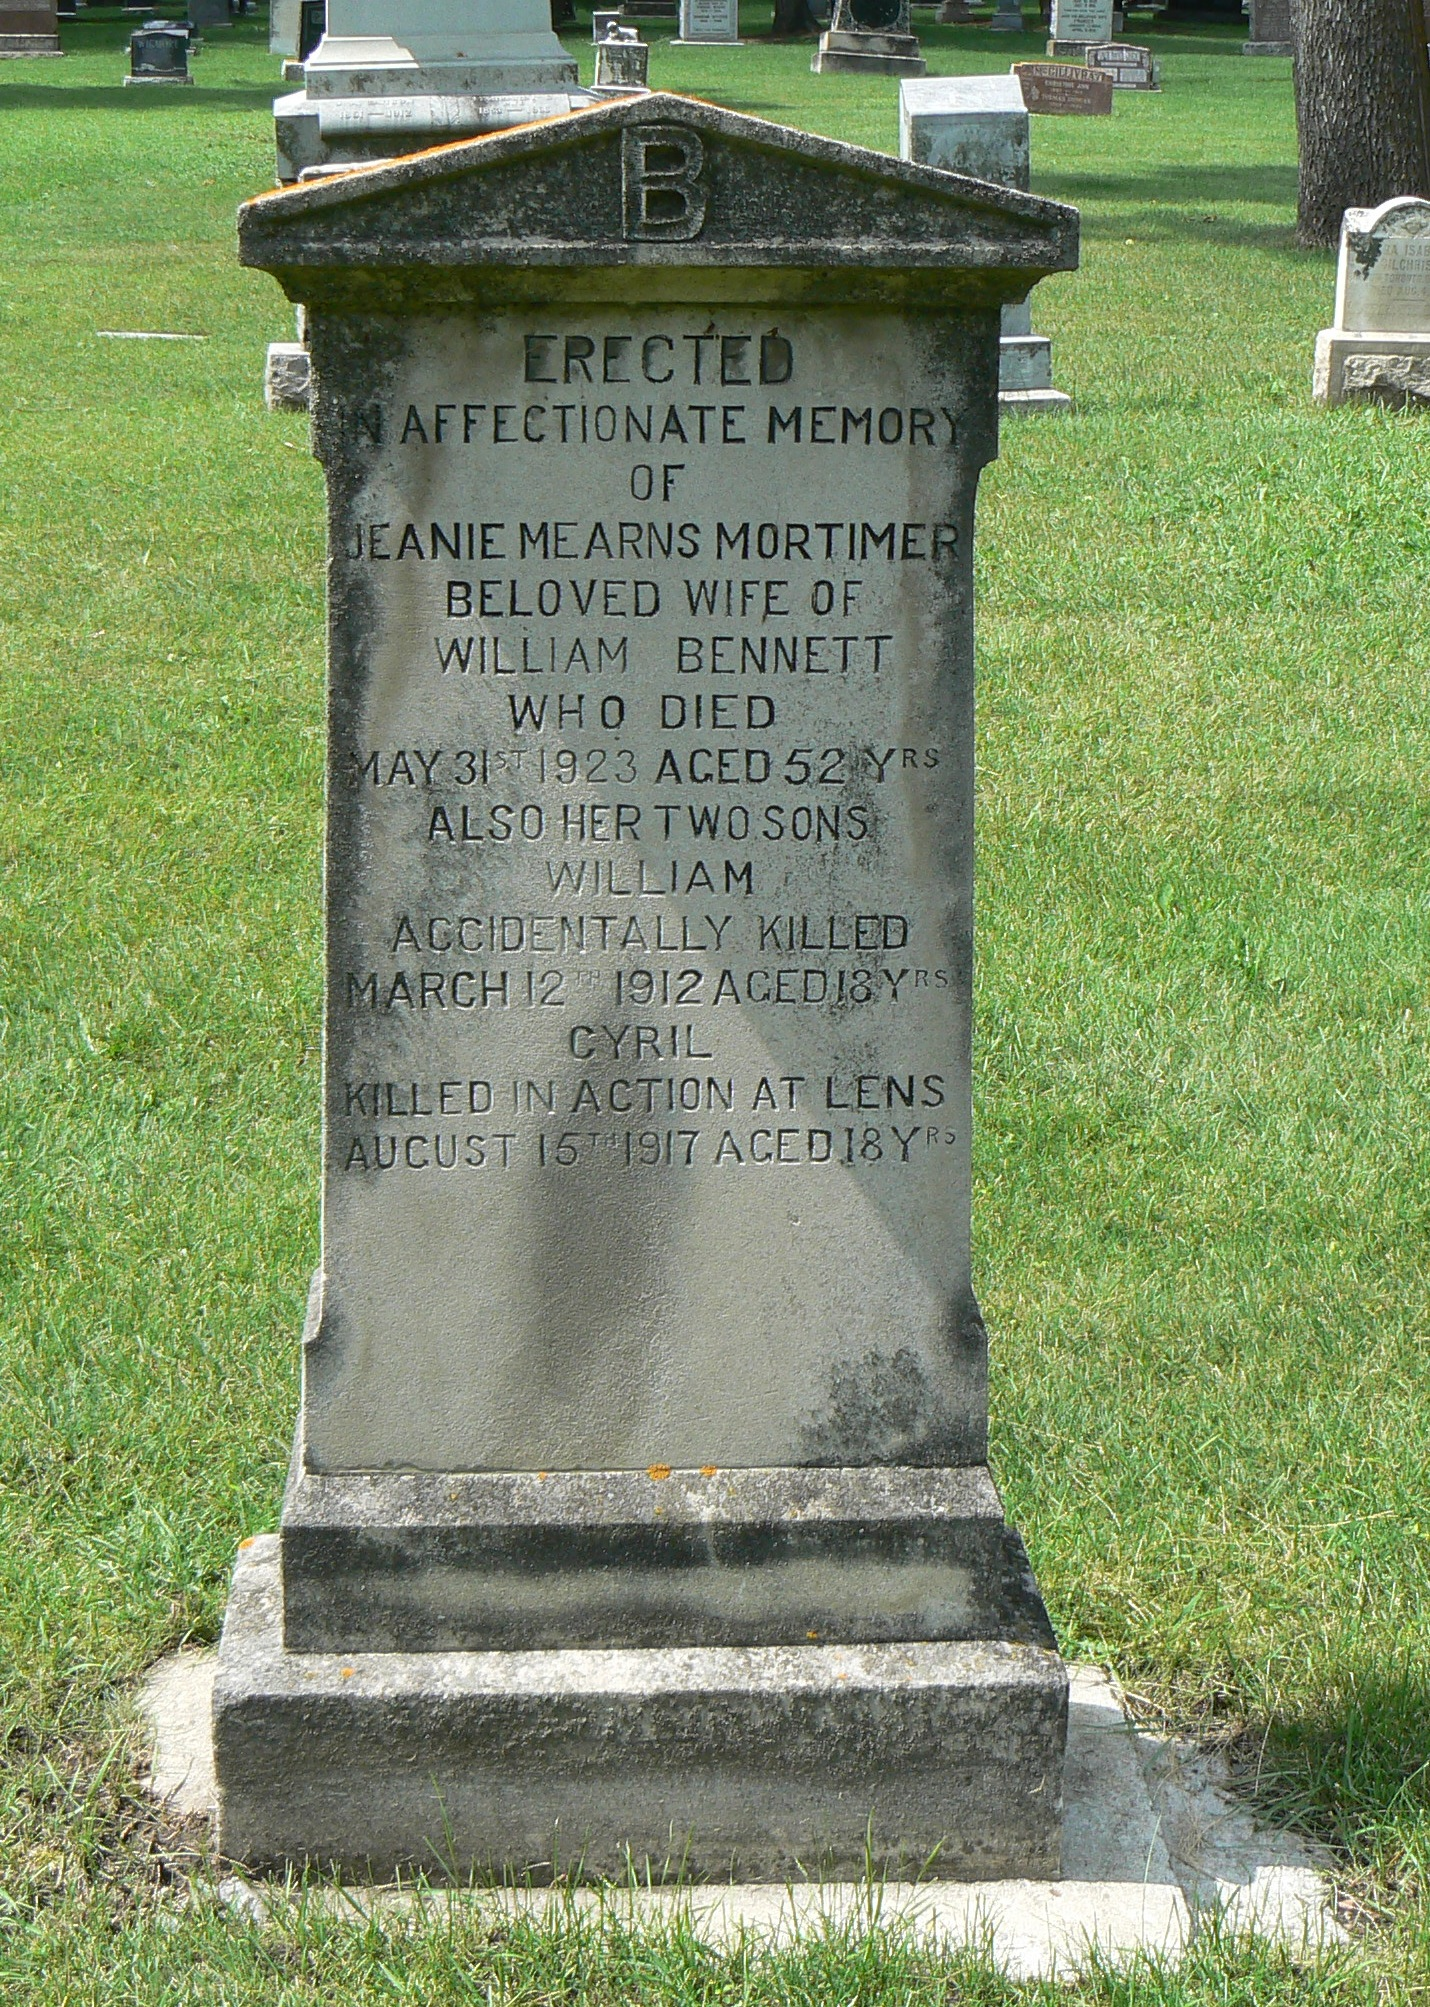 Memorial– Cyril Killed in action at Lens August 15th 1917 Aged 18Yrs